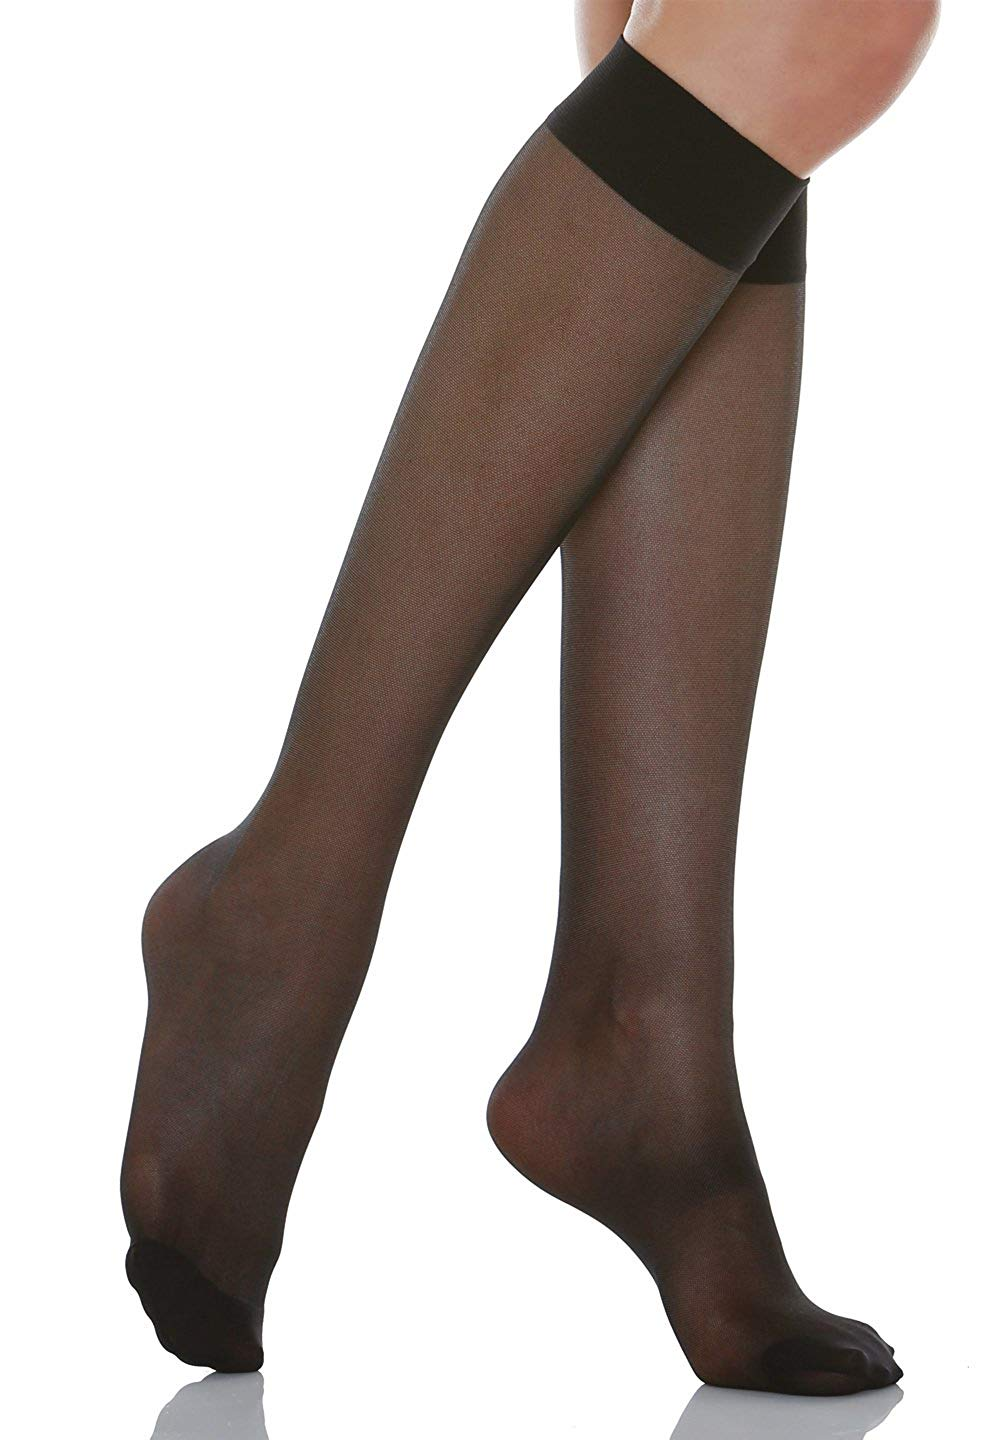 1de96d08c0e Get Quotations · Alpha Medical 15-20 mmHg Compression Knee High Stockings